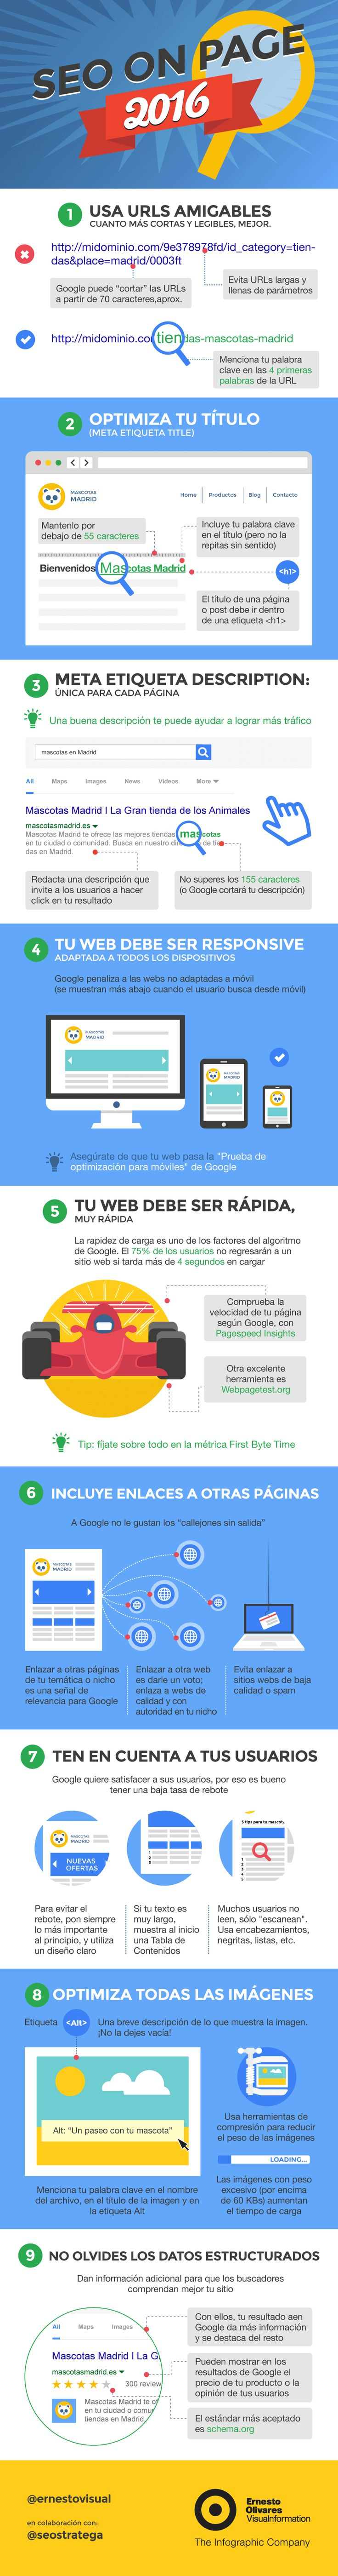 Infografia SEO On Page 2016